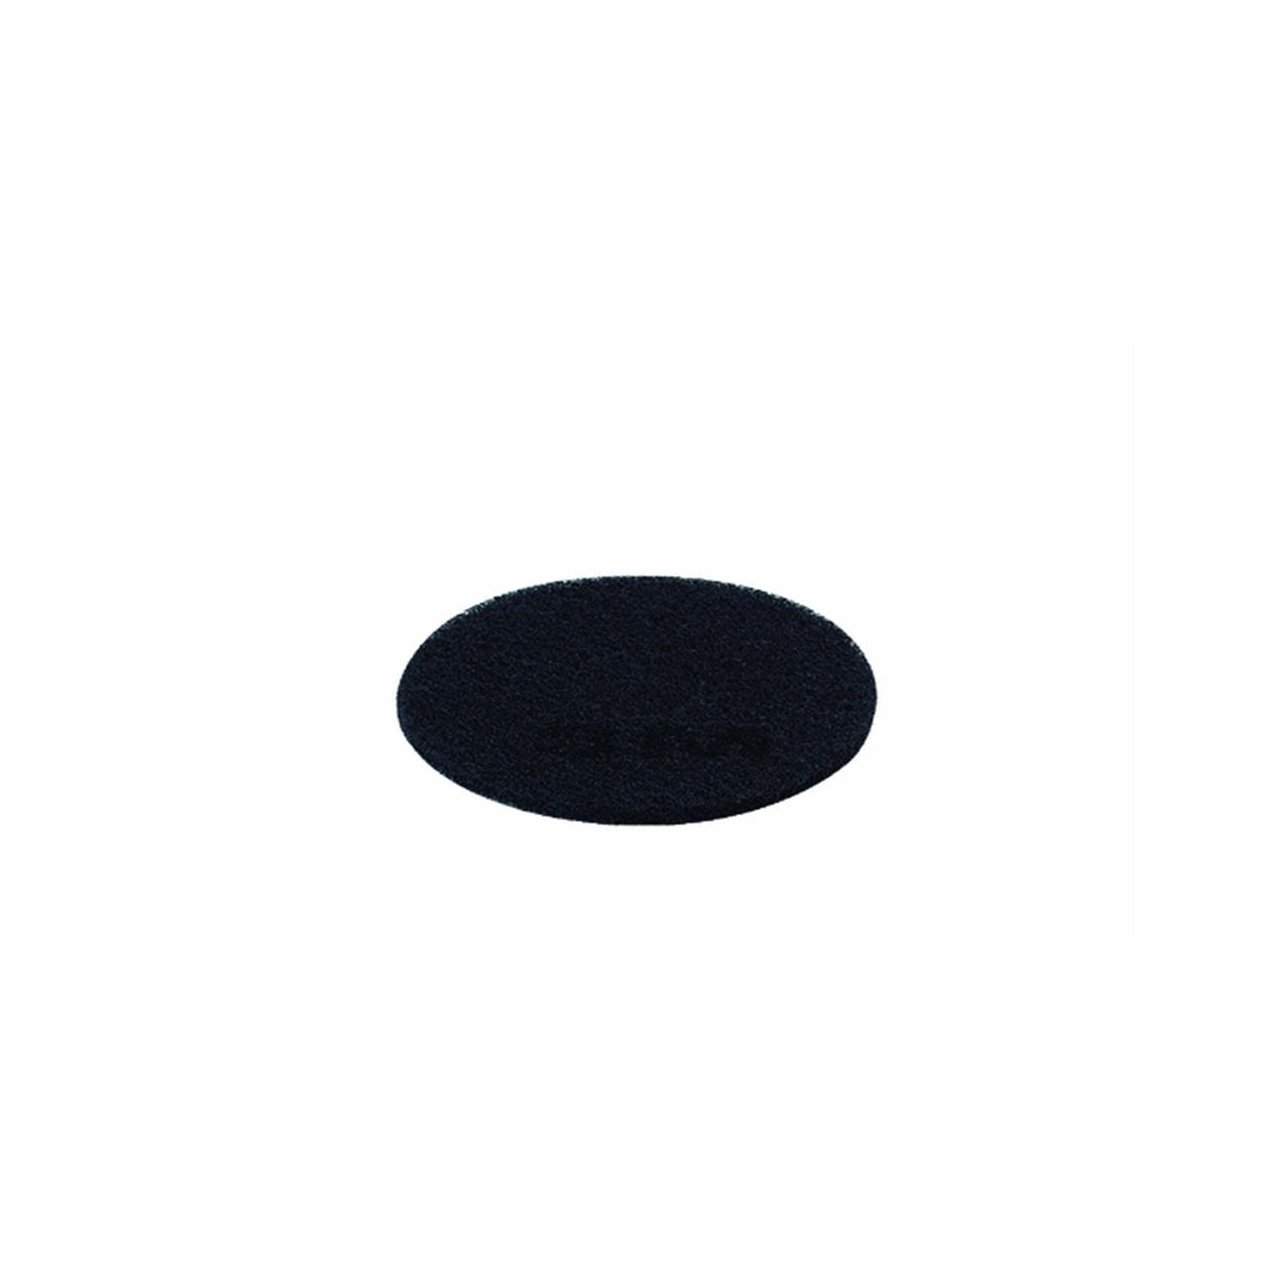 "13"" BLACK STRIP FLOOR PAD- 1 PAD"